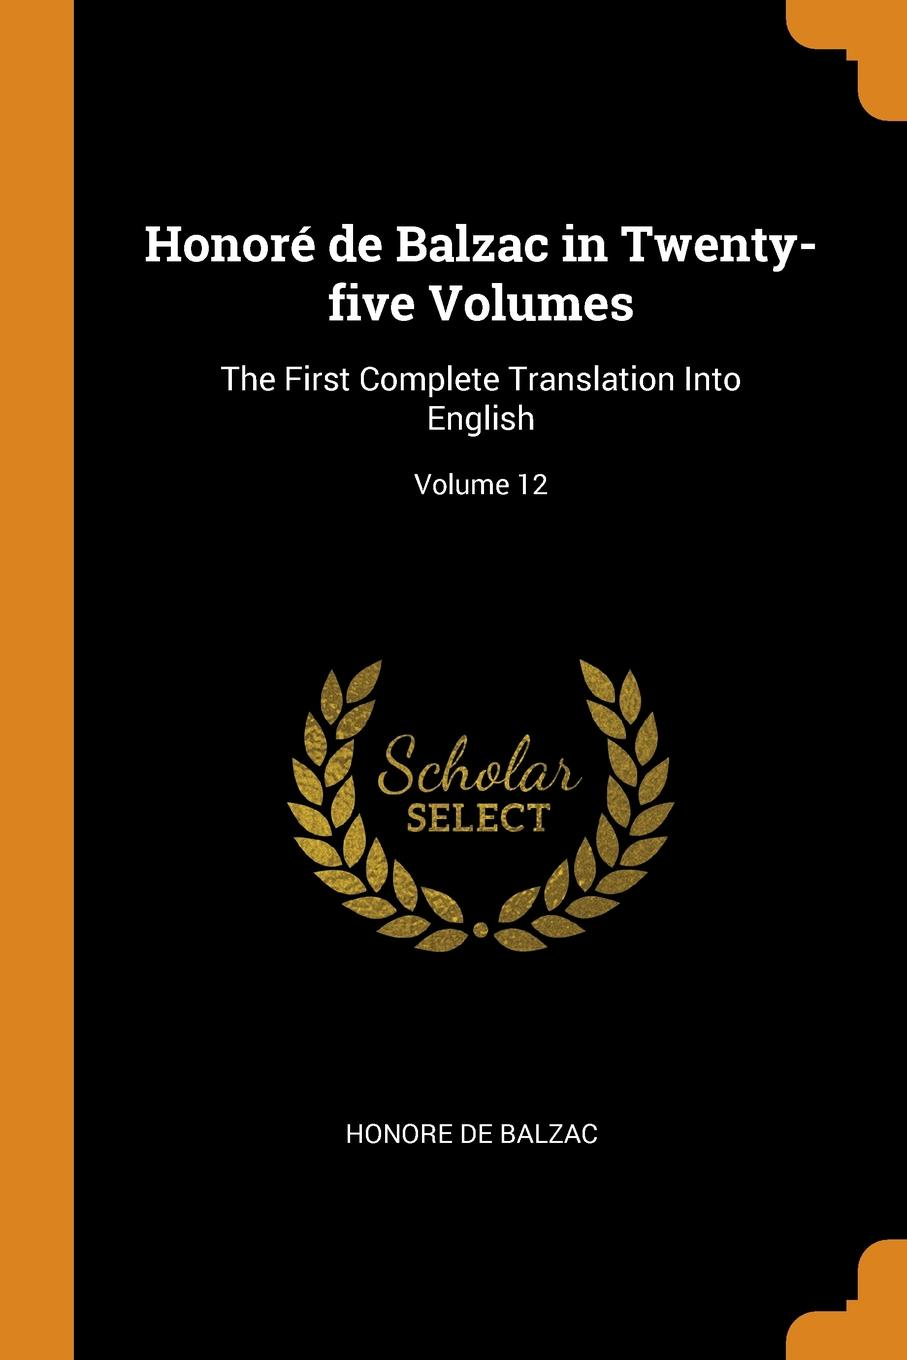 Honore De Balzac Honore de Balzac in Twenty-five Volumes. The First Complete Translation Into English; Volume 12